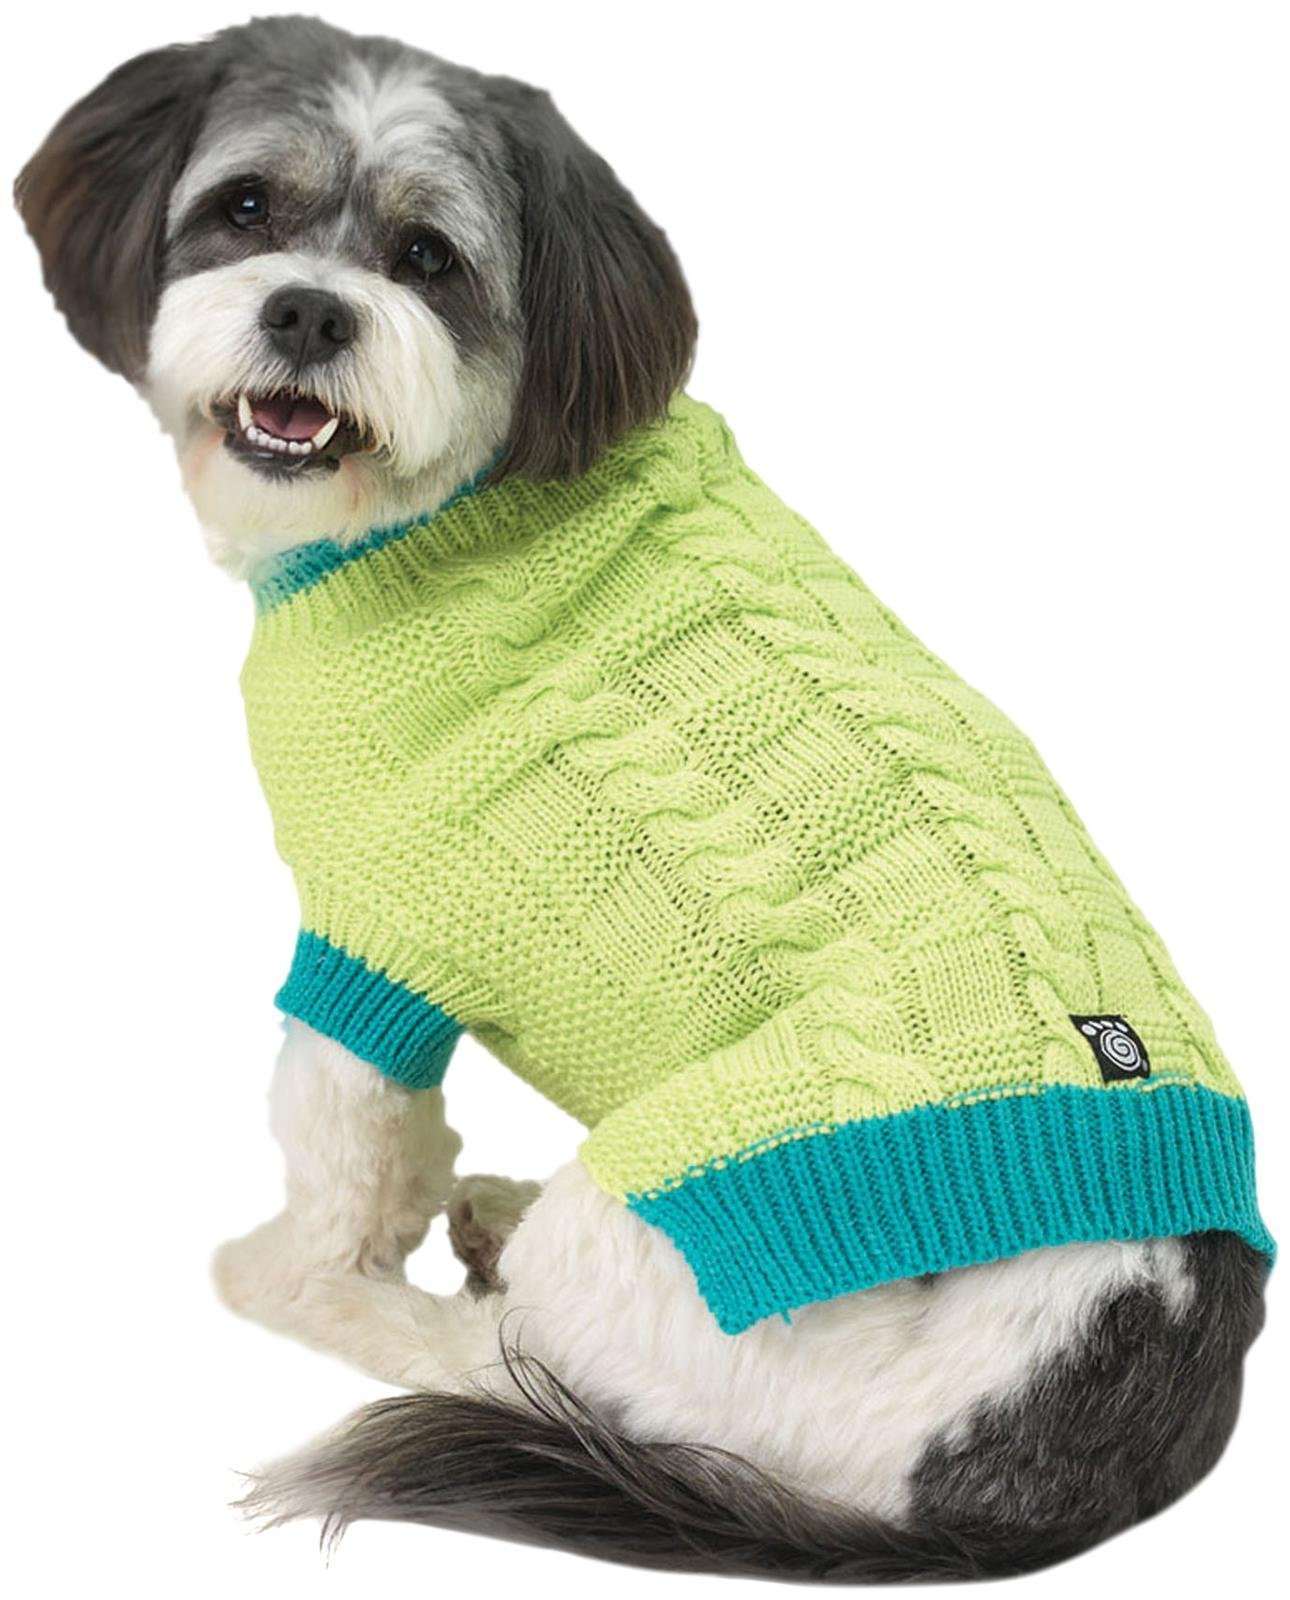 Petrageous Designs Cody'S Chunky Cable Sweater - Lime/Teal - X-Small